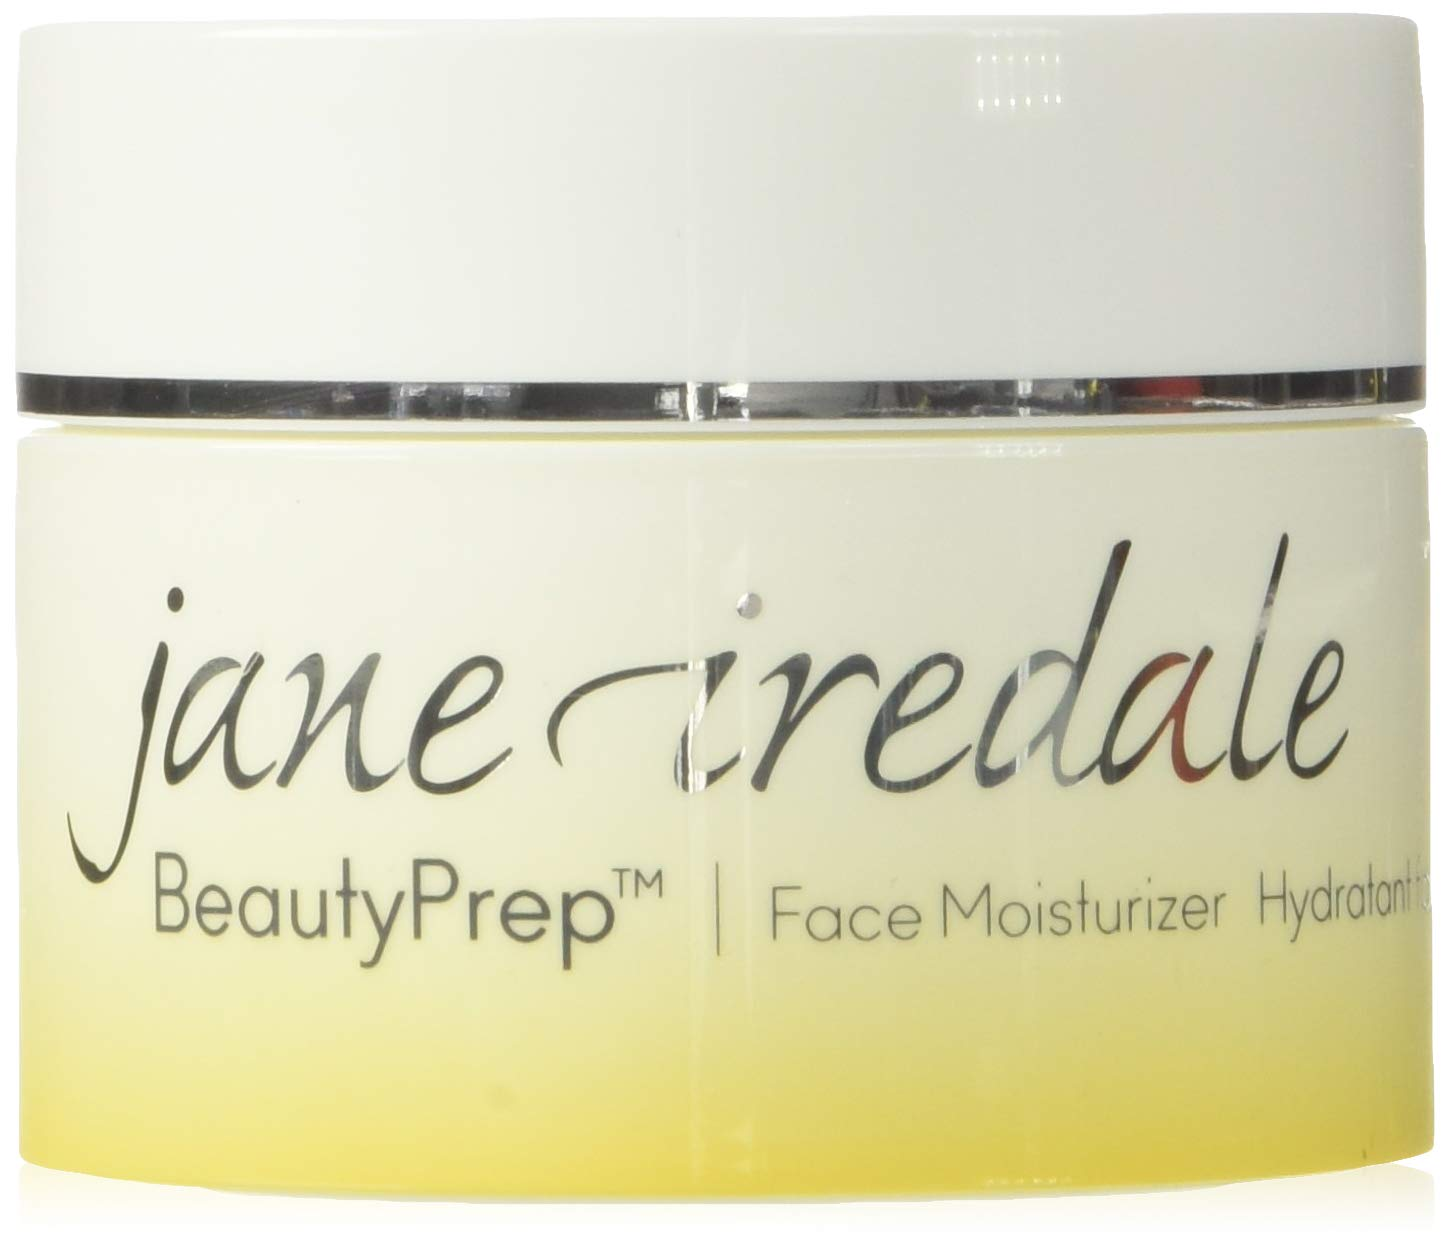 jane iredale Sales of SALE items from new works SEAL limited product BeautyPrep Face Moisturizer